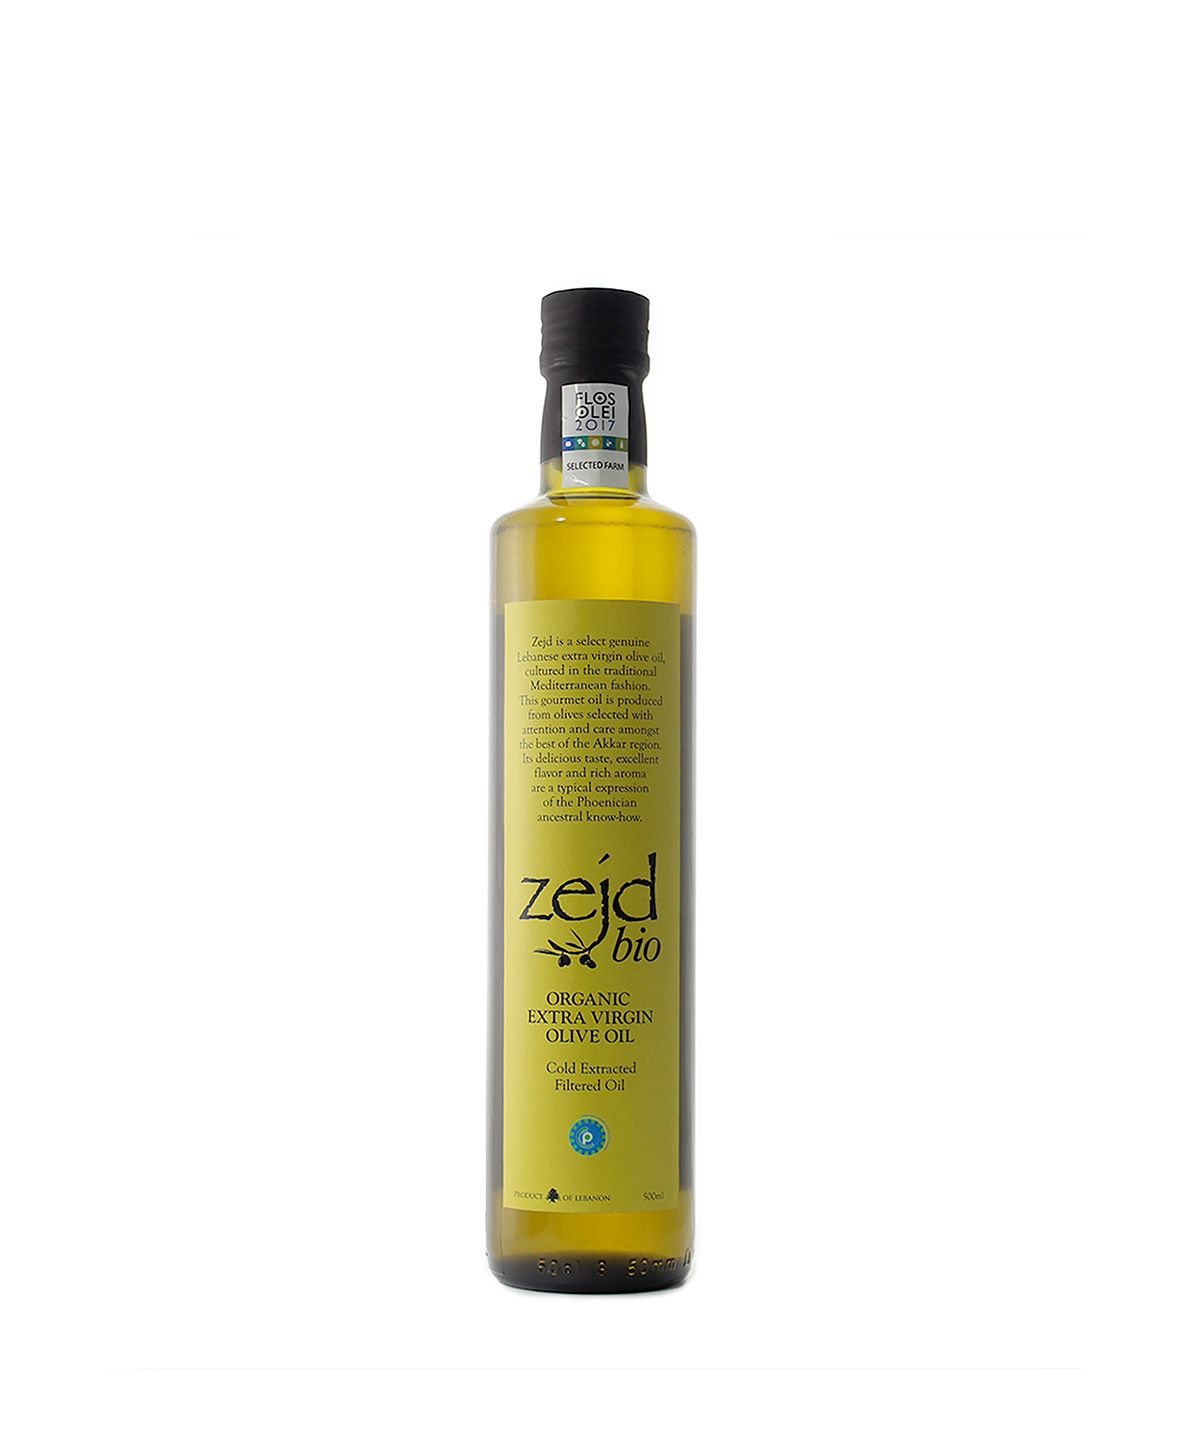 House of Zejd Extra Virgin Olive Oil, 750mL